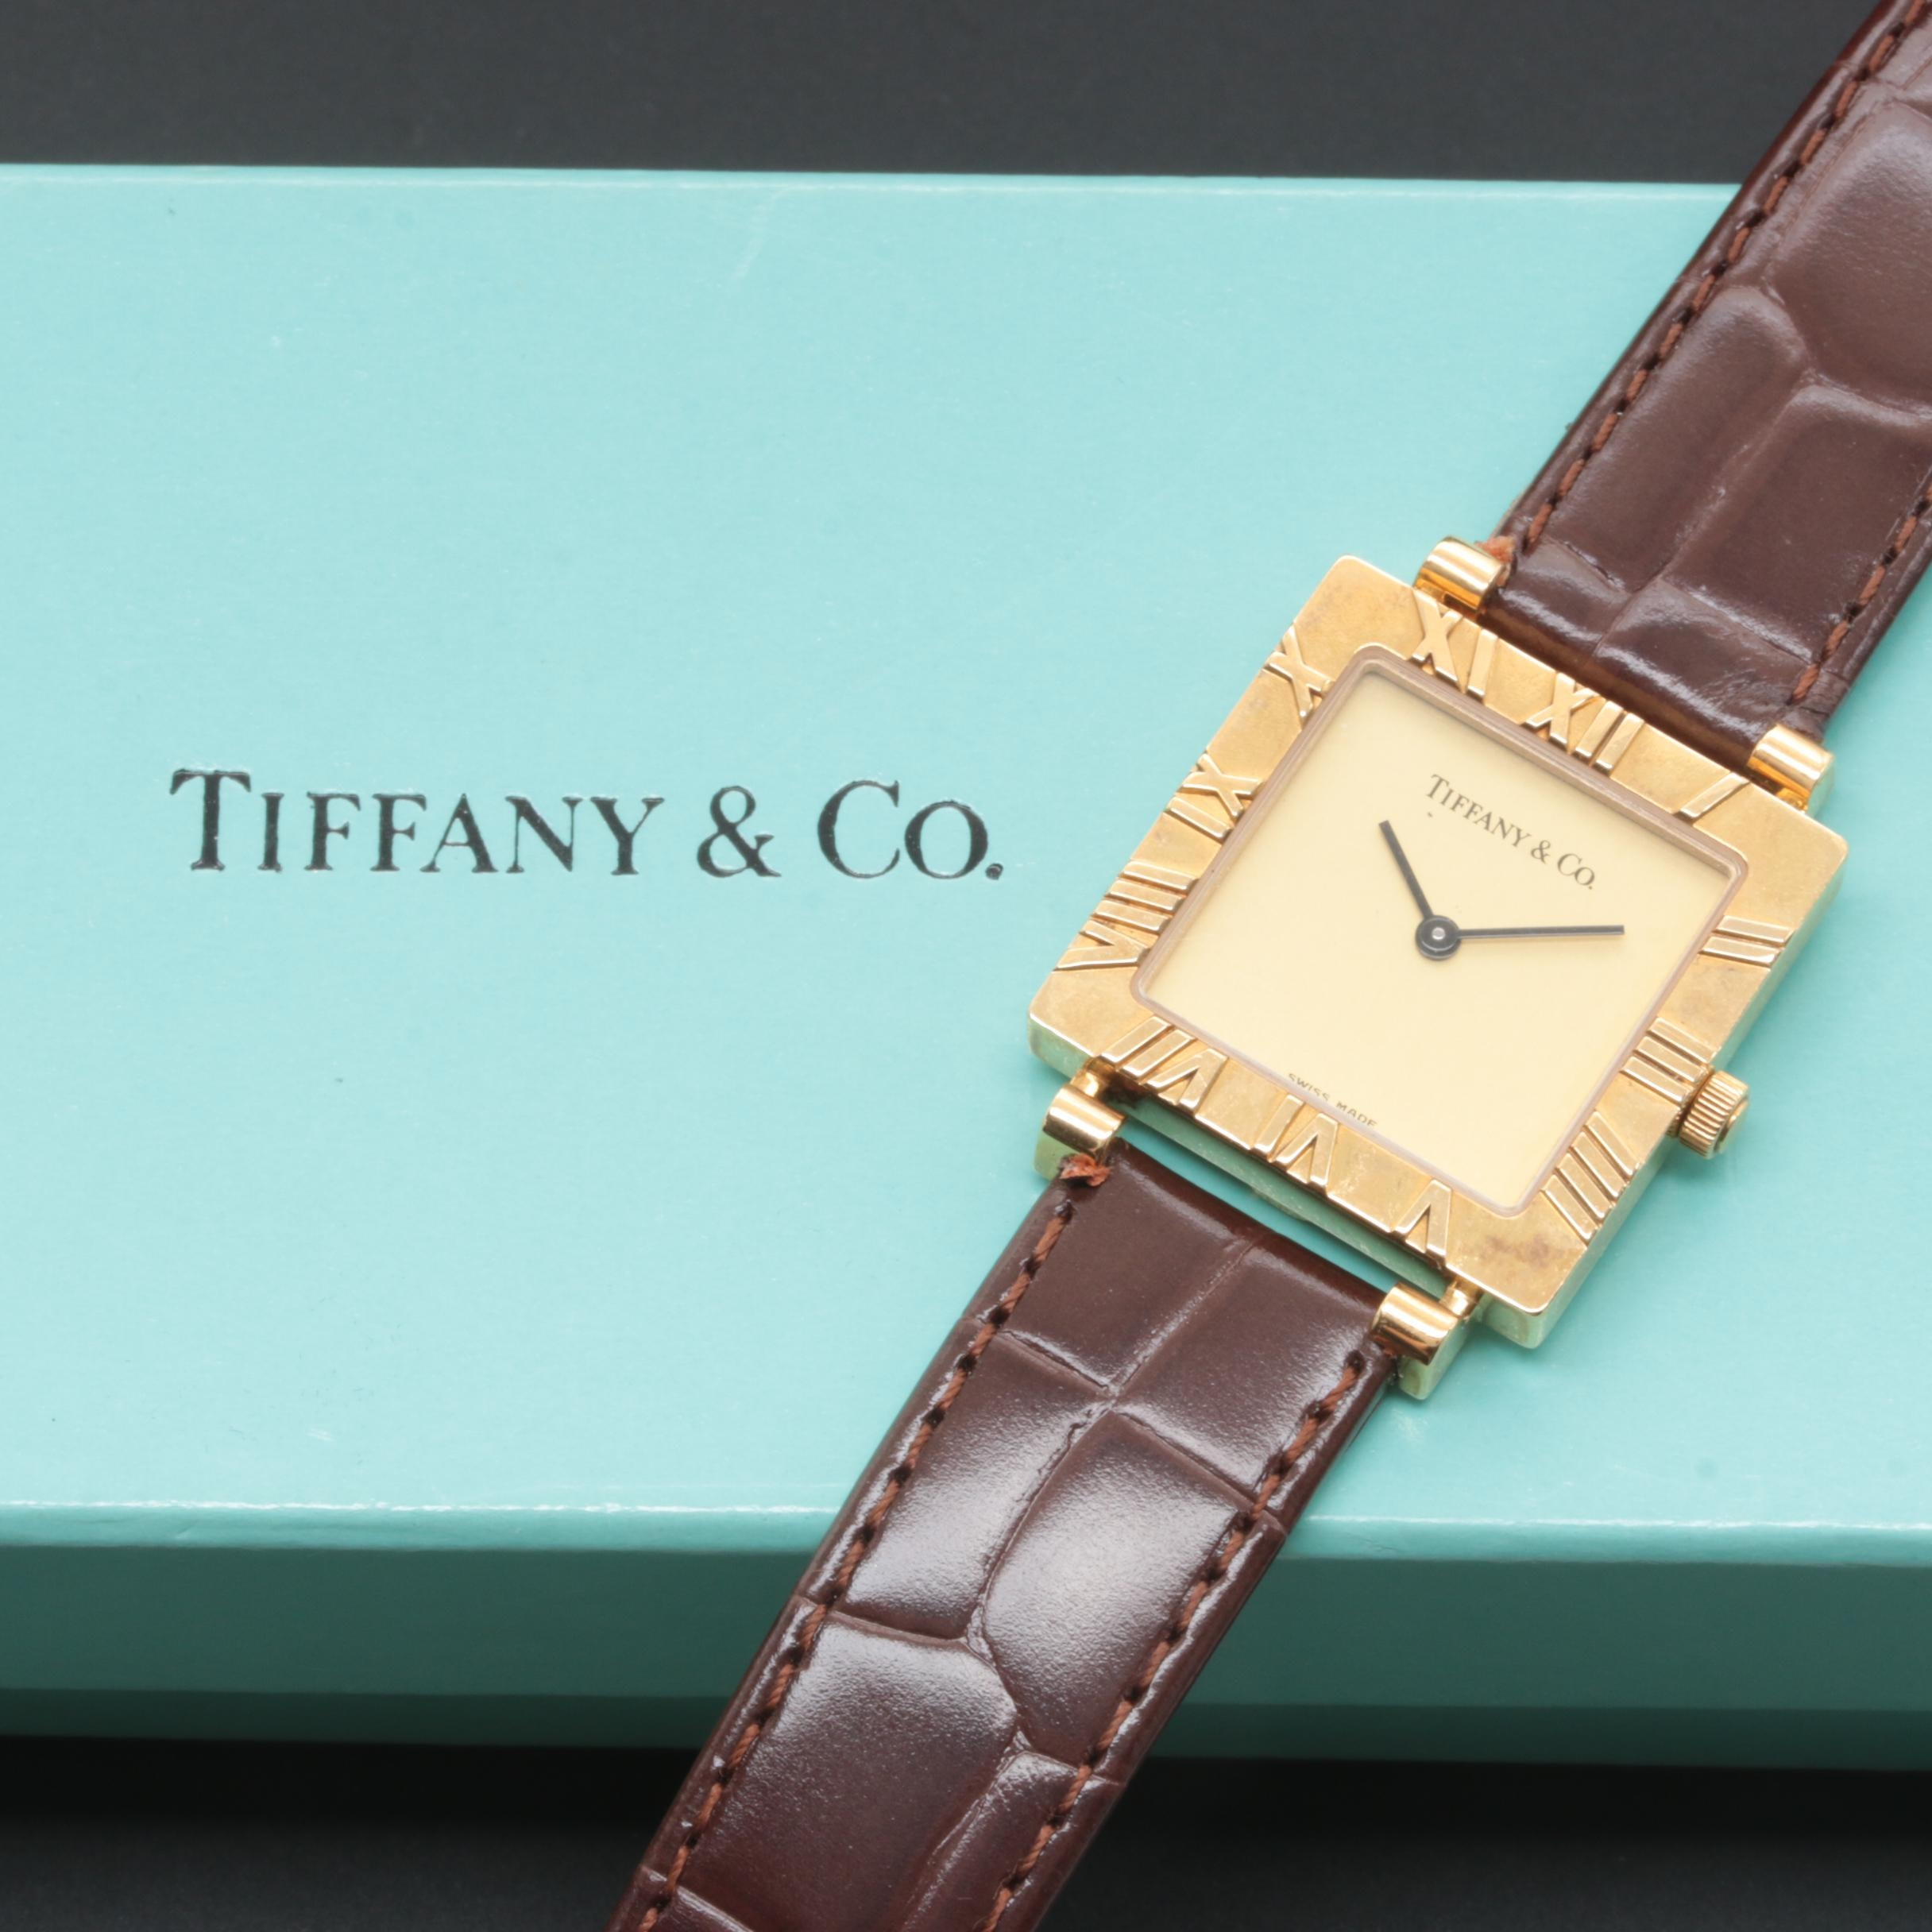 Tiffany & Co. Atlas 18K Yellow Gold Wristwatch with Brown Leather Strap